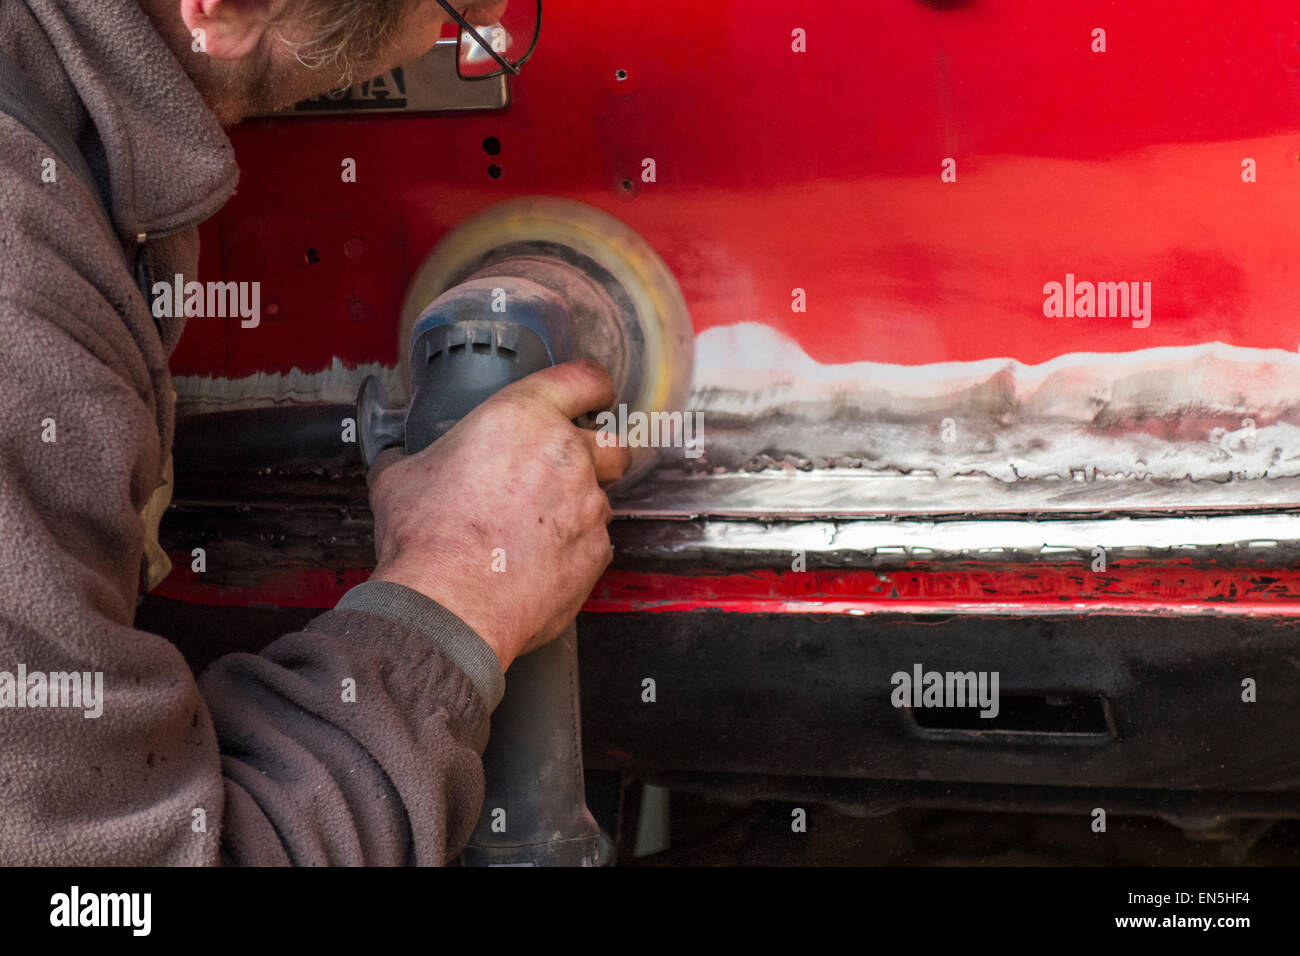 Car enthusiast polishing red oldtimer's coachwork / bodywork with angle grinder / side grinder / disc grinder Stock Photo